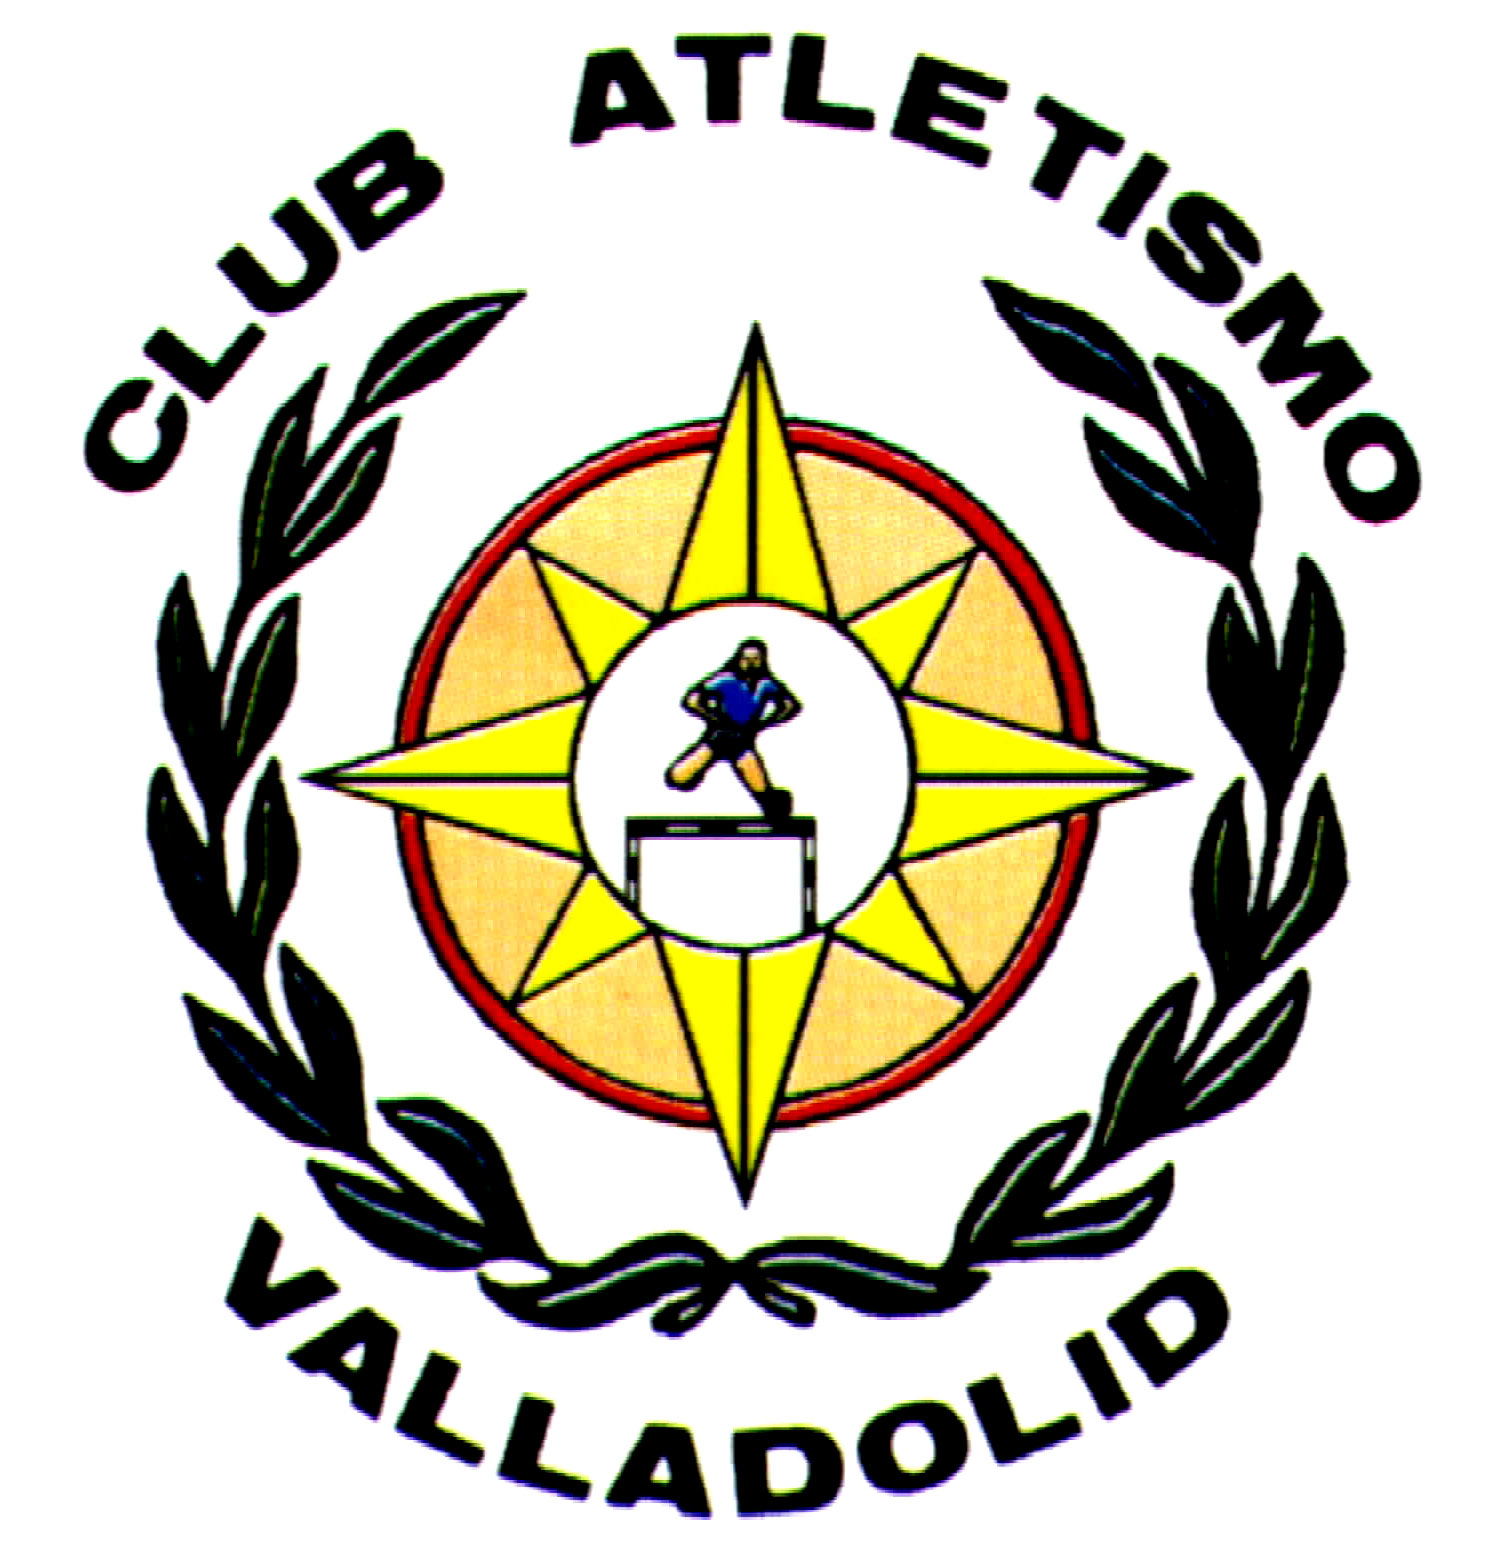 CLUB ATLETISMO VALLADOLID